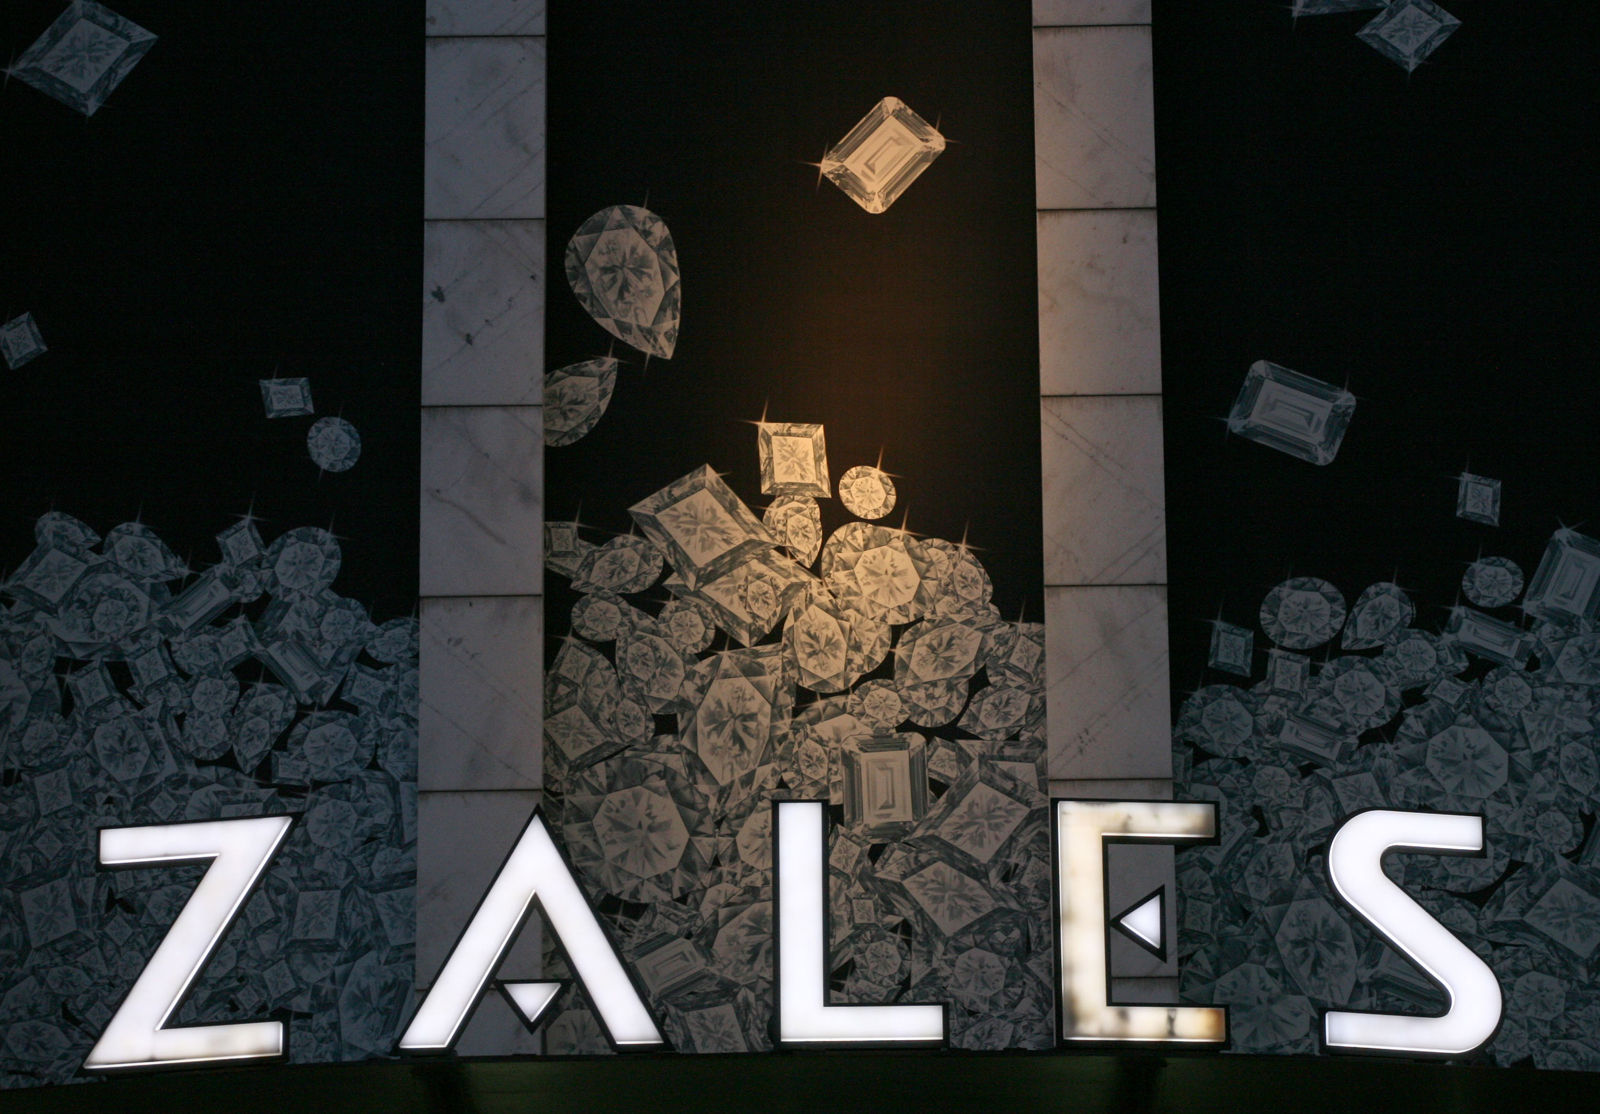 FILE - In this Aug. 7, 2008 file photo, a Zale's store is shown in New York. Jewelry retailer Zale said Wednesday, May 26, 2010, its fiscal third-quarter net loss narrowed on improved margins and lower costs.(AP Photo/Mark Lennihan, file)